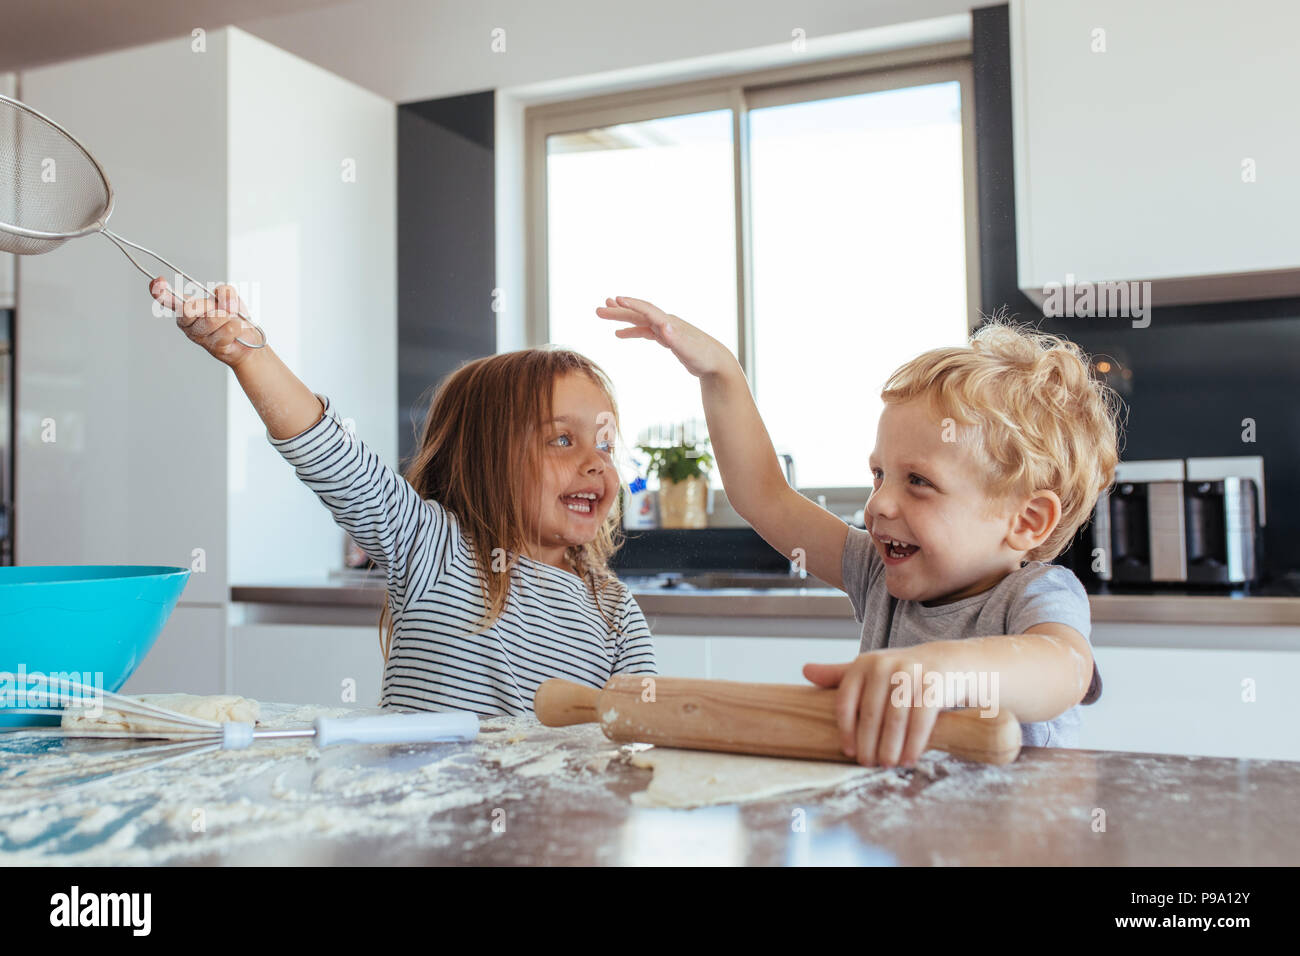 Lustige Bilder Küchenarbeit Small Boy Cooking Together Sister Stockfotos Small Boy Cooking